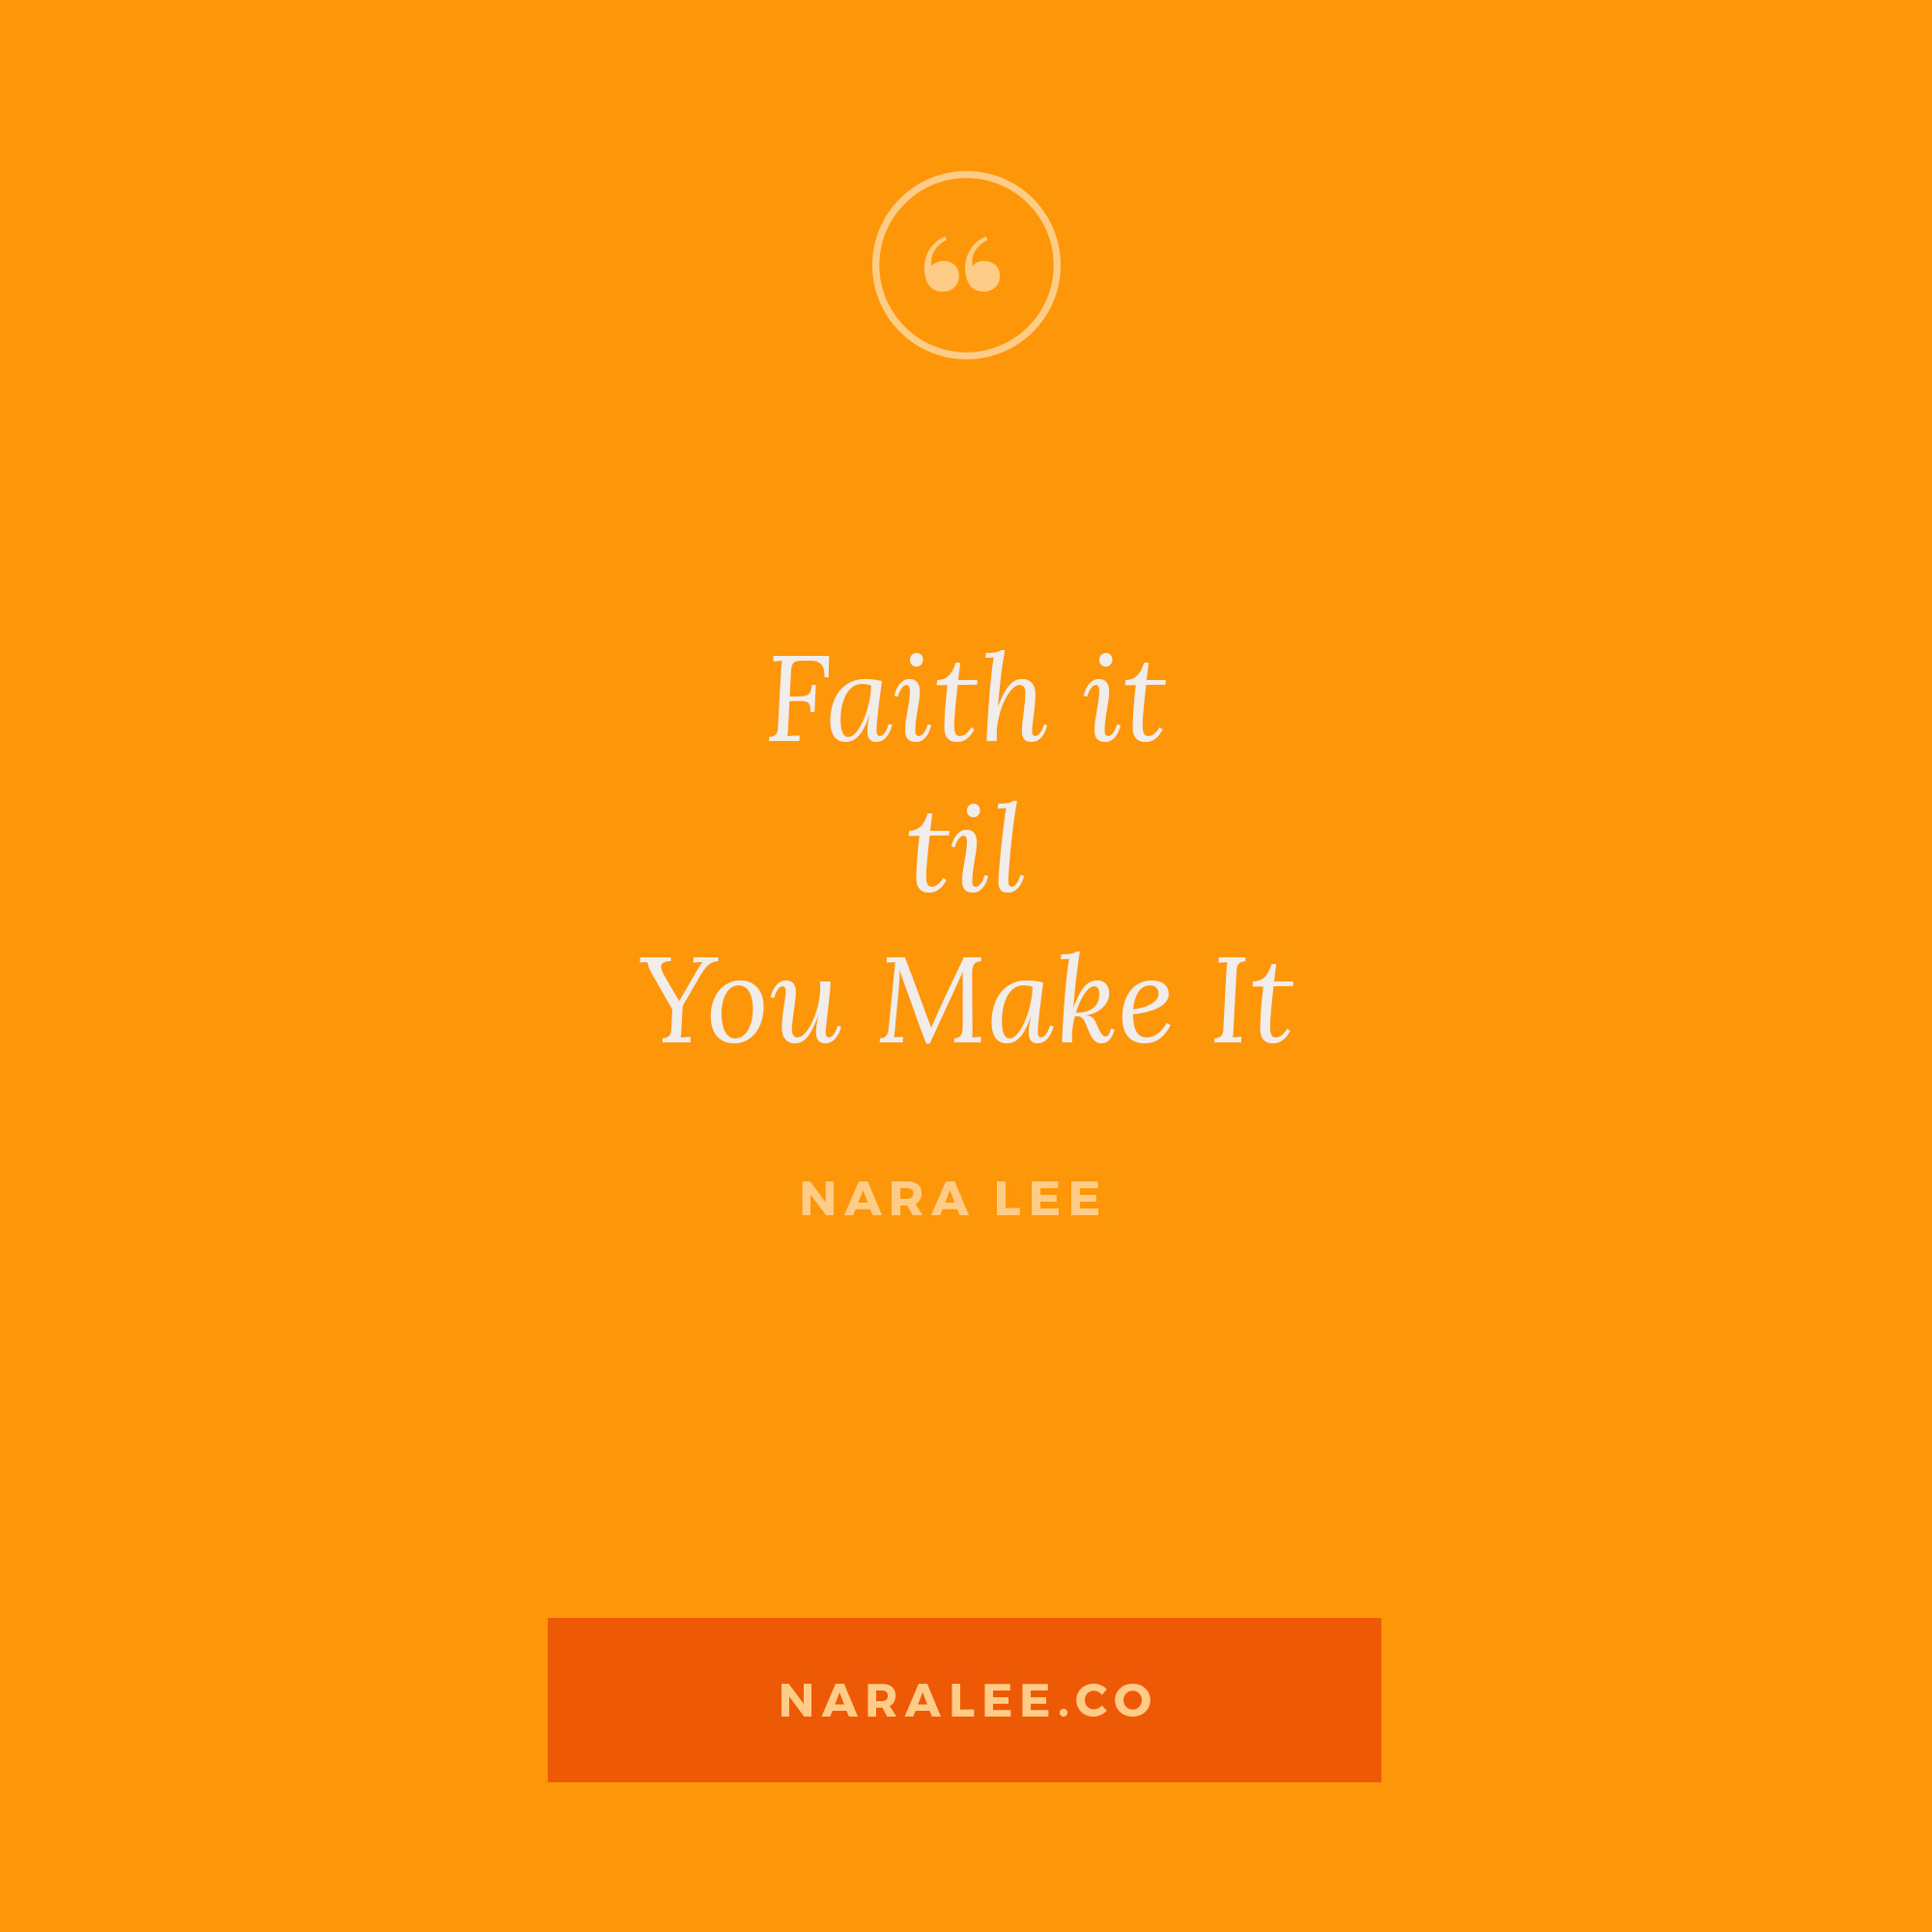 [Rising-Strong-Quotes] Nara Lee Quotes - Faith it, til you Make It.jpg